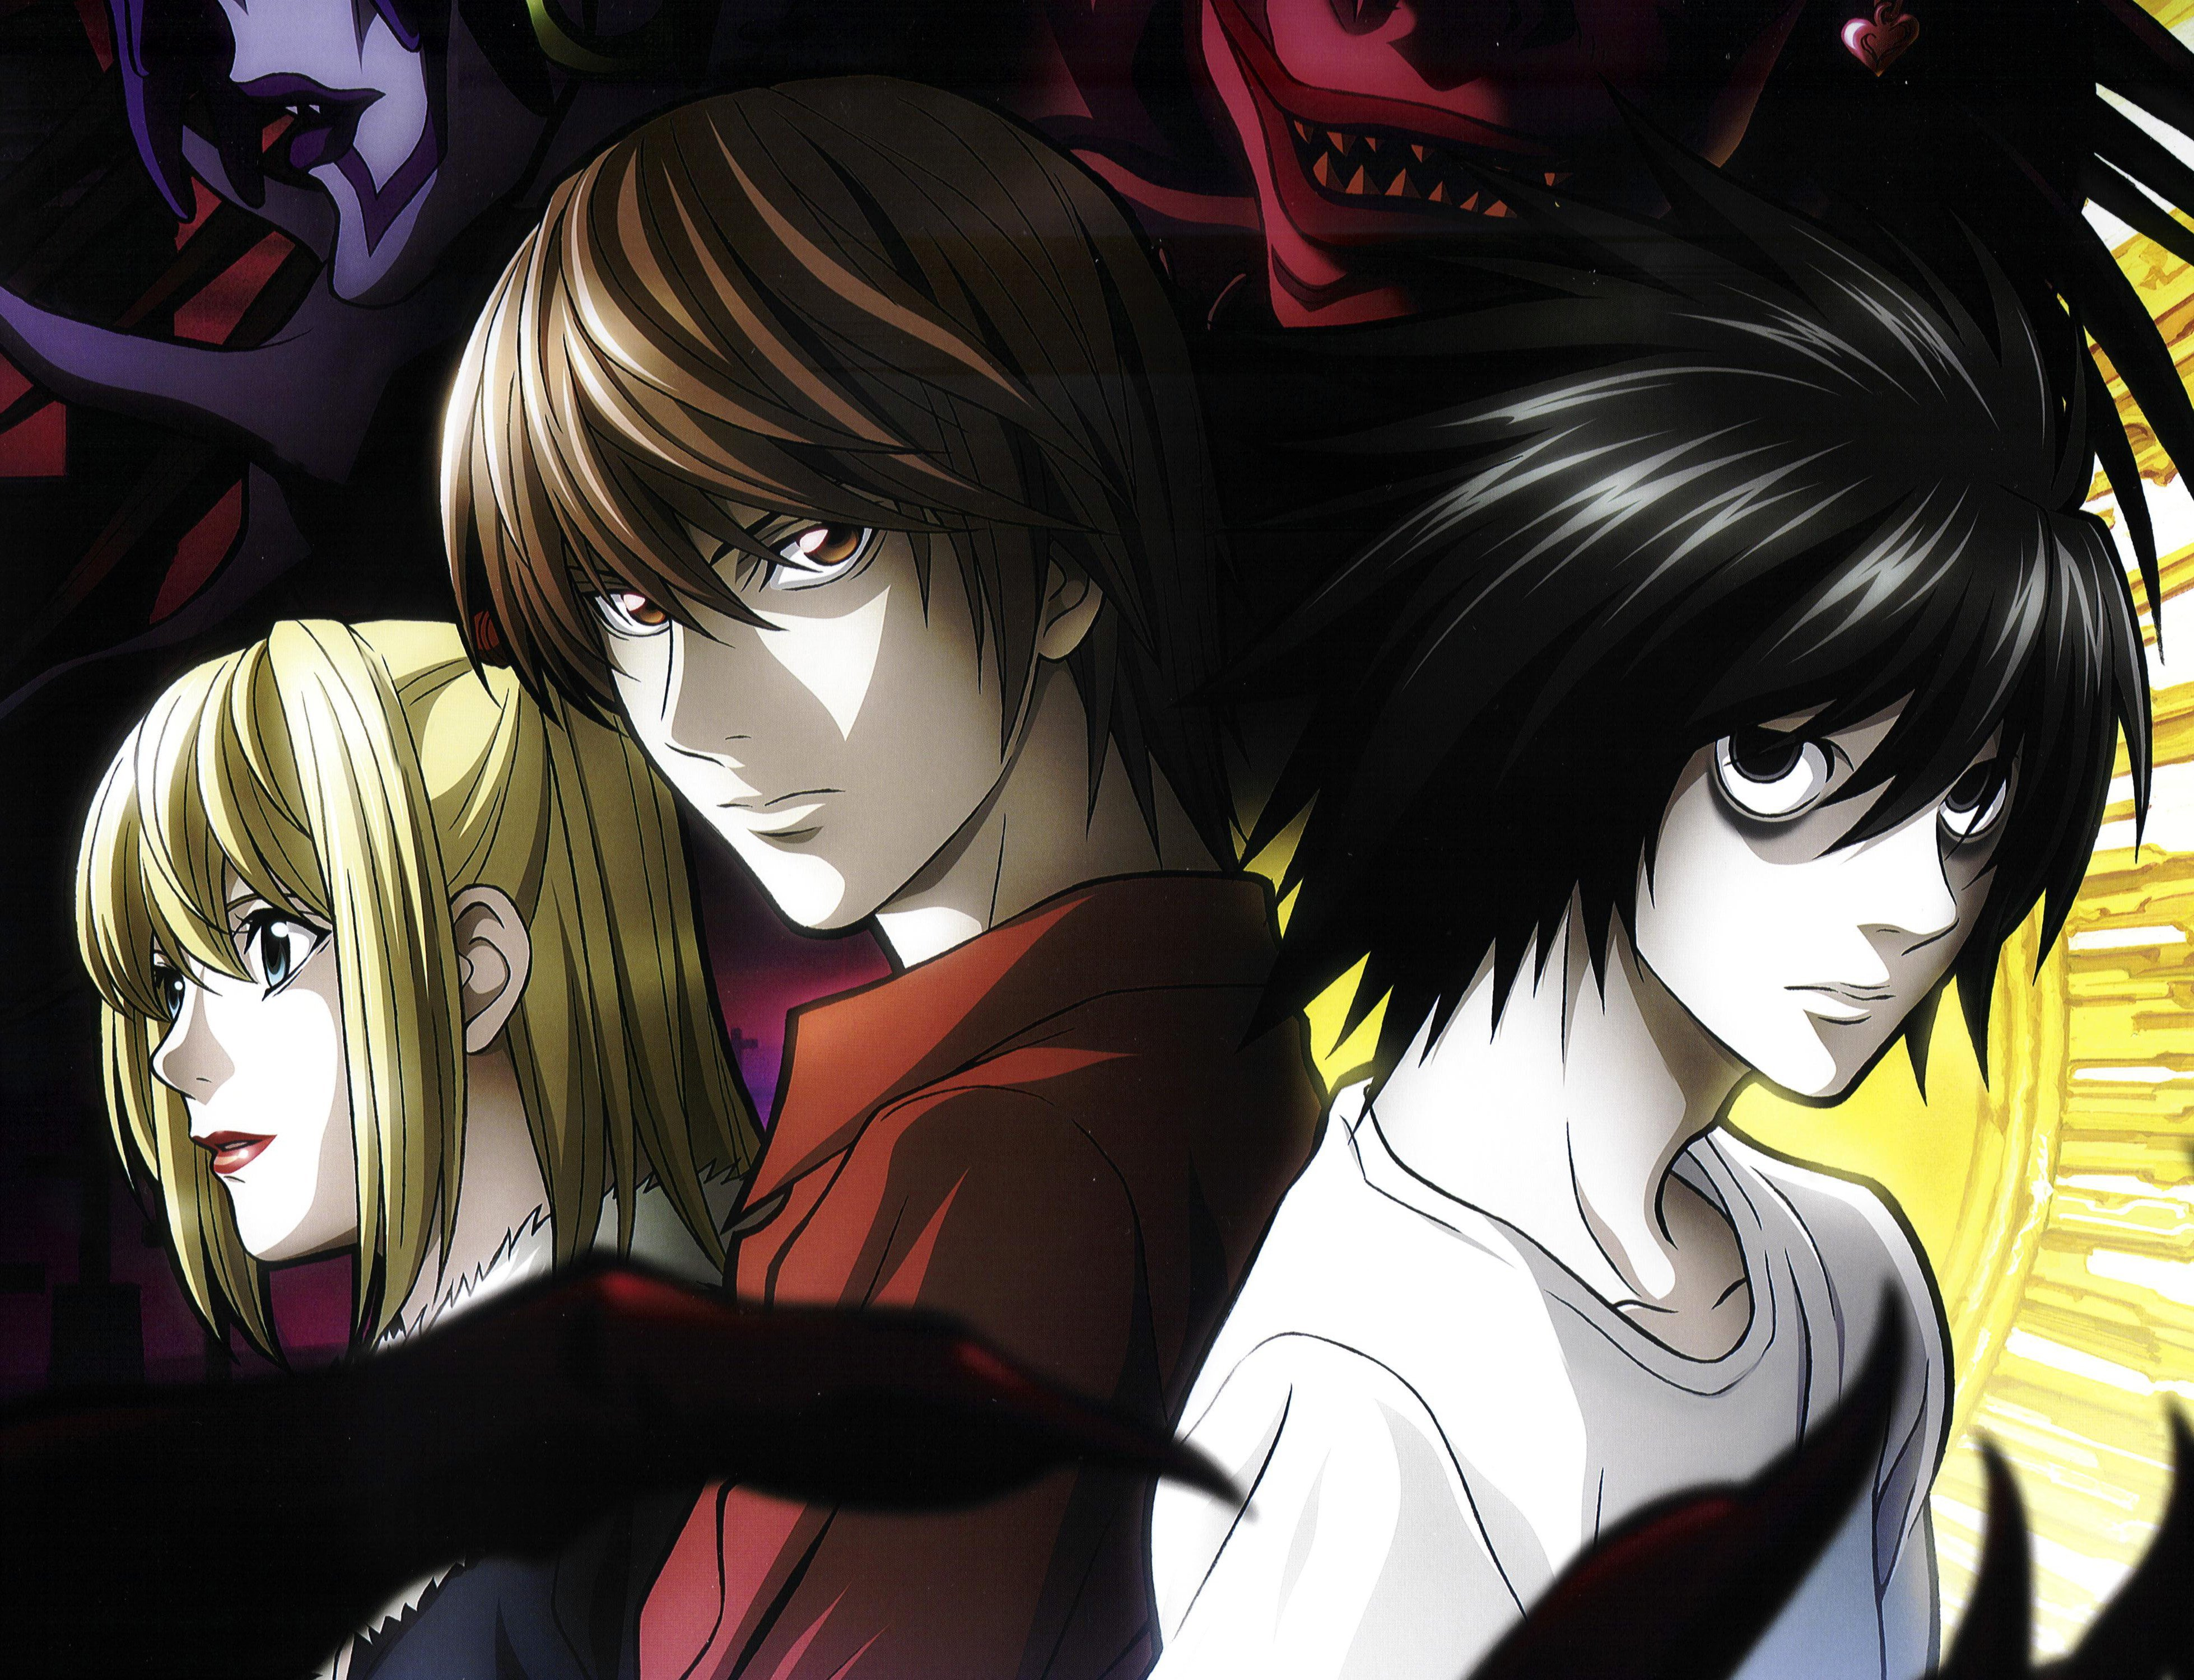 Death Note Yagami Light Kira L Lawliet Amane Misa